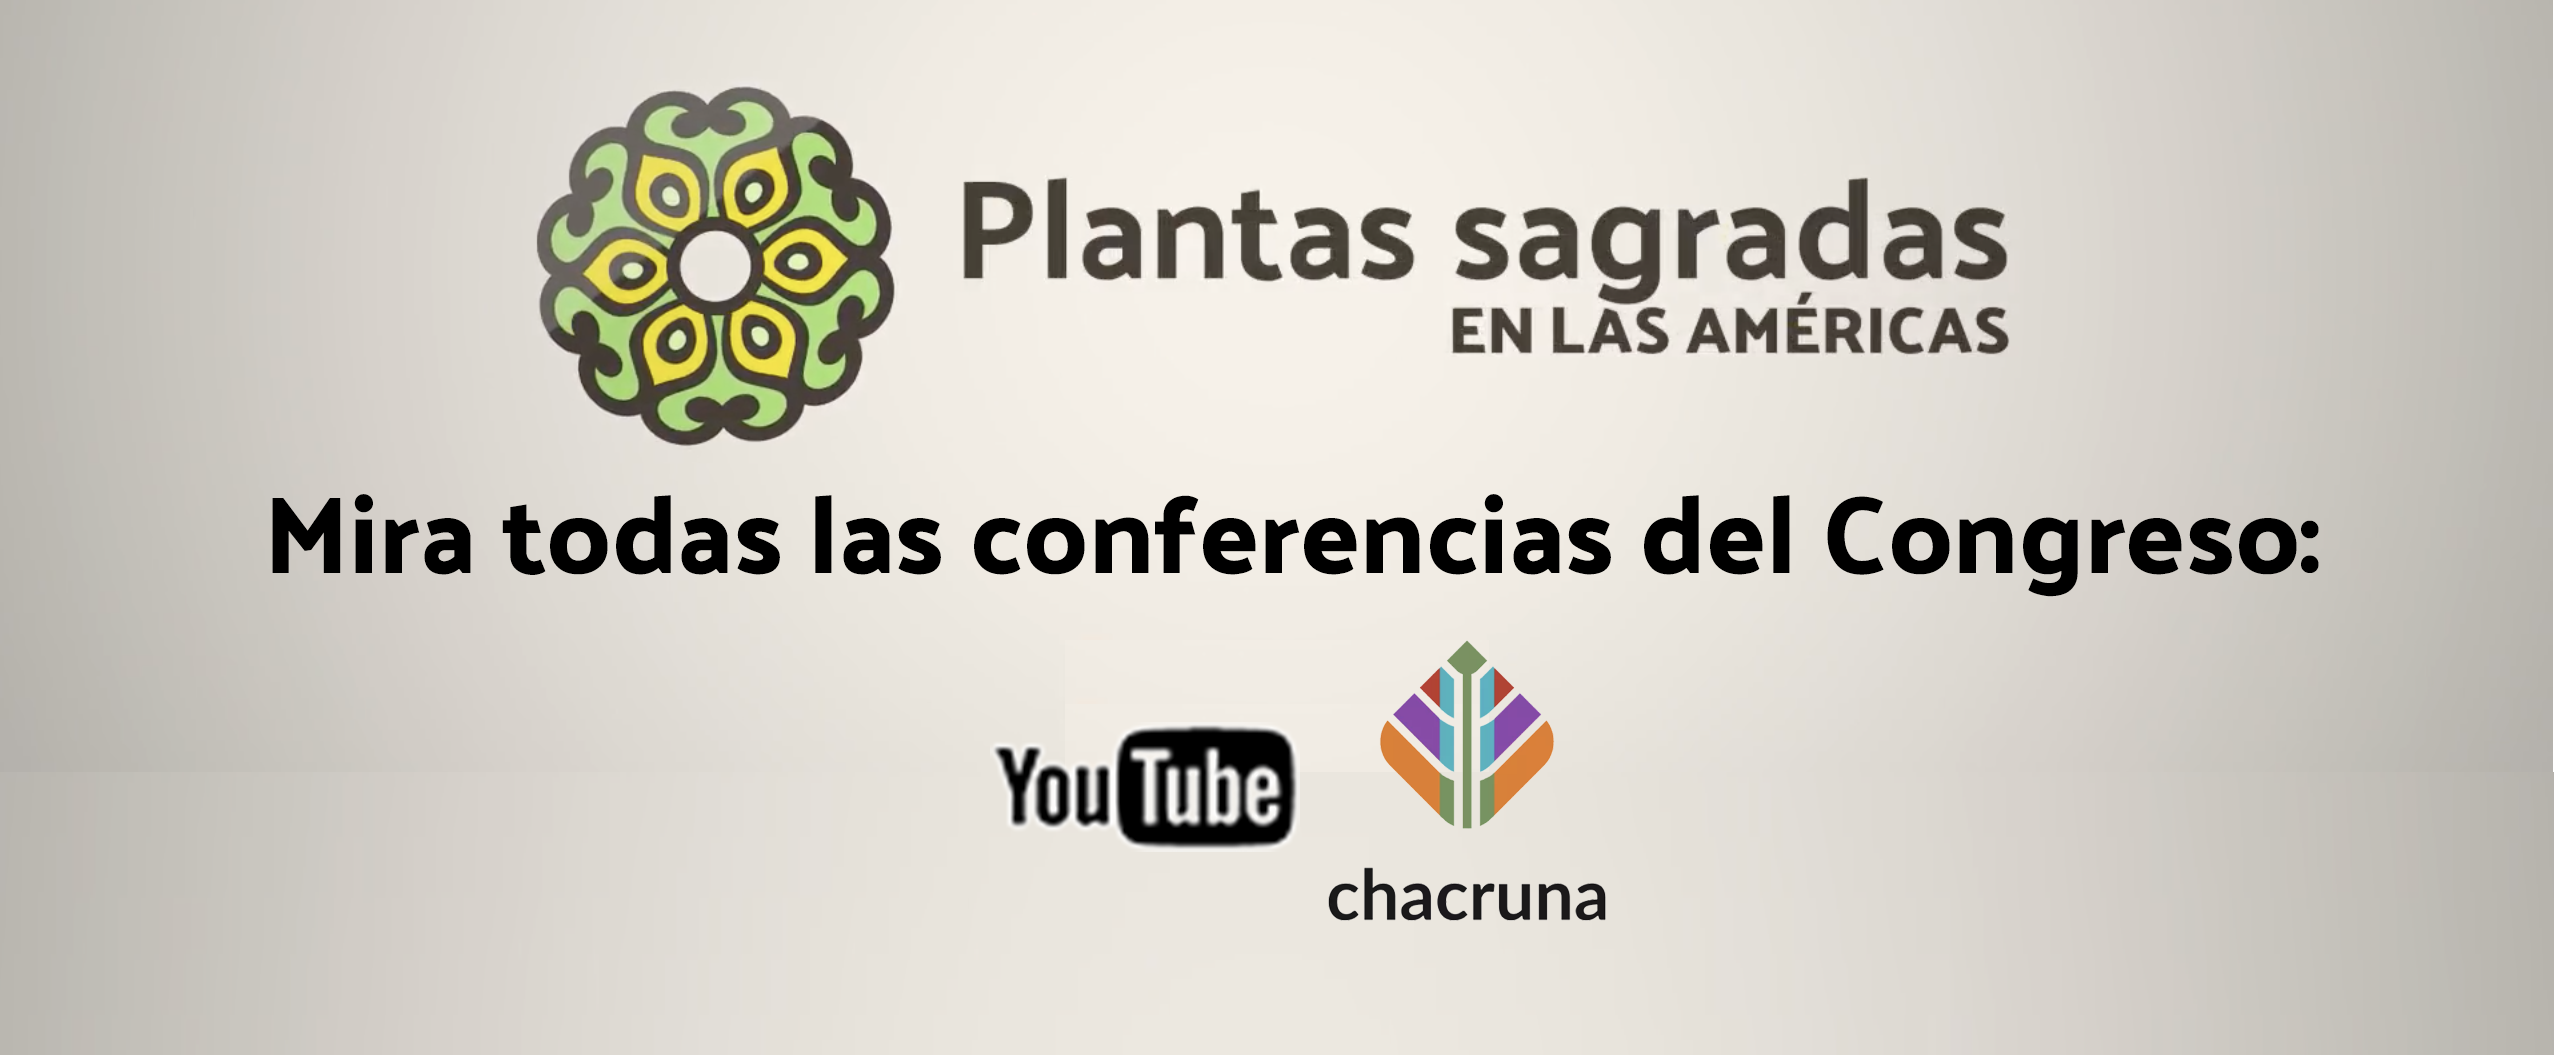 conferencias congreso plantas sagradas